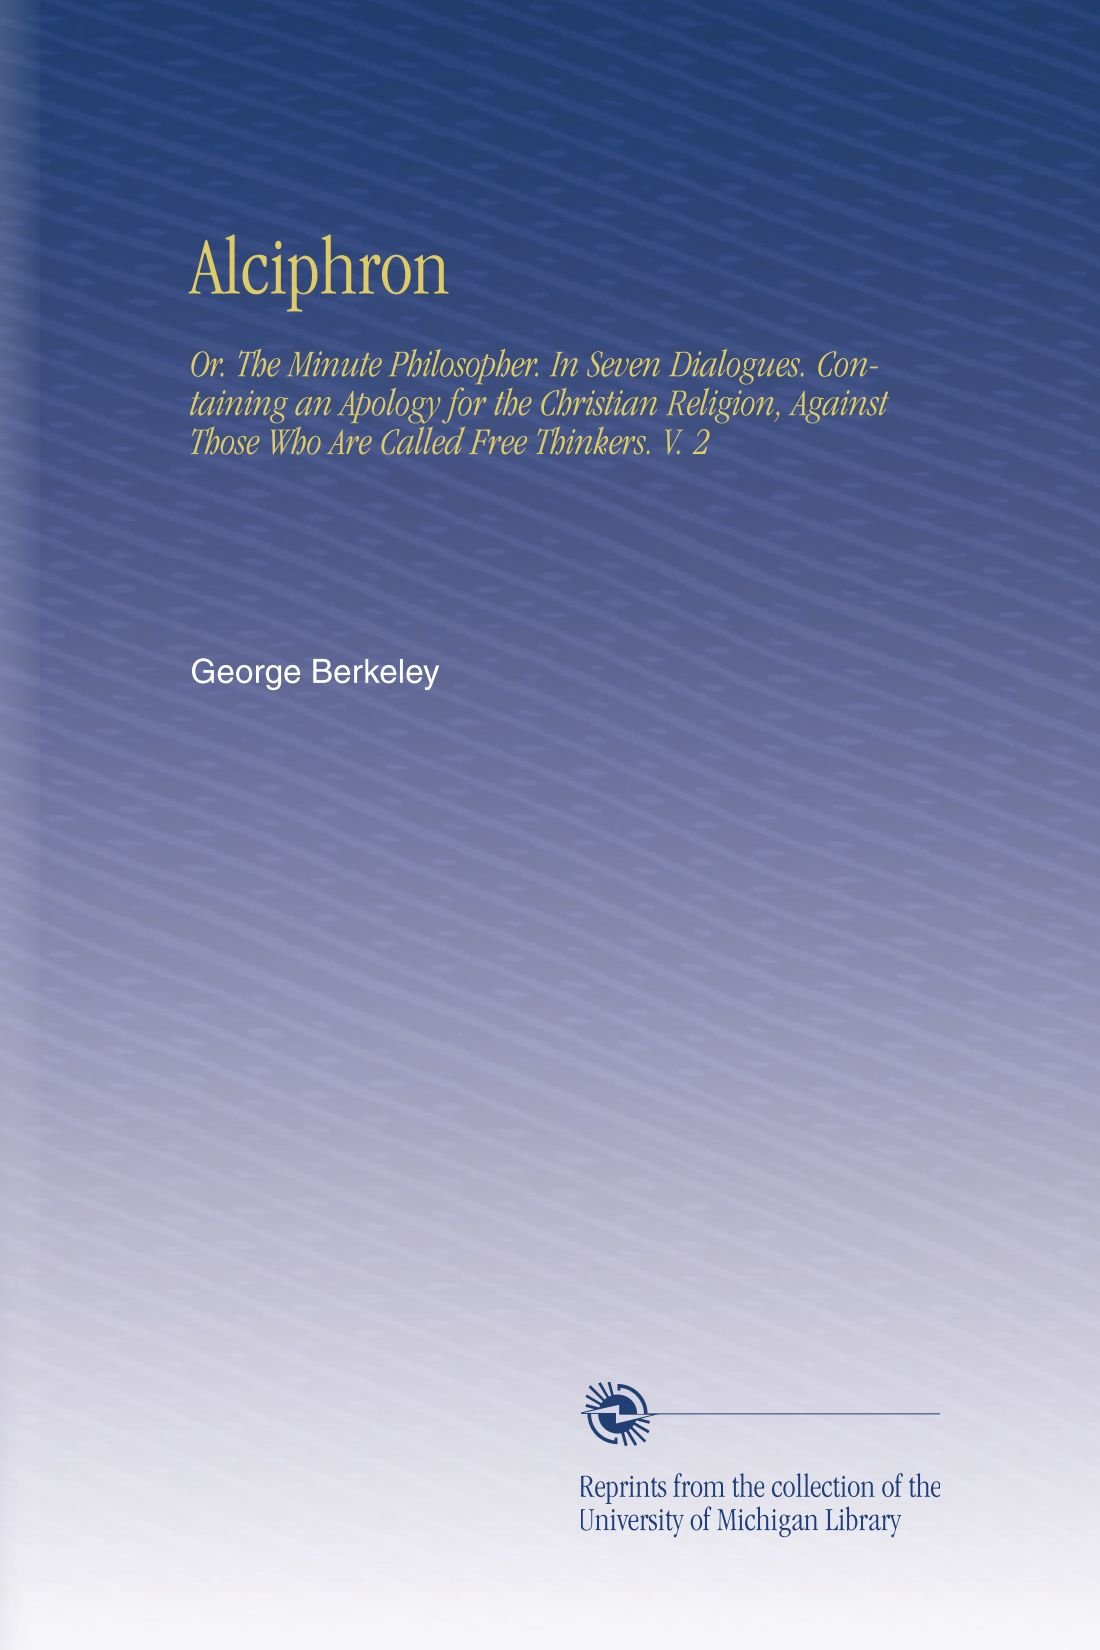 Read Online Alciphron: Or. The Minute Philosopher. In Seven Dialogues. Containing an Apology for the Christian Religion, Against Those Who Are Called Free Thinkers. V. 2 ebook